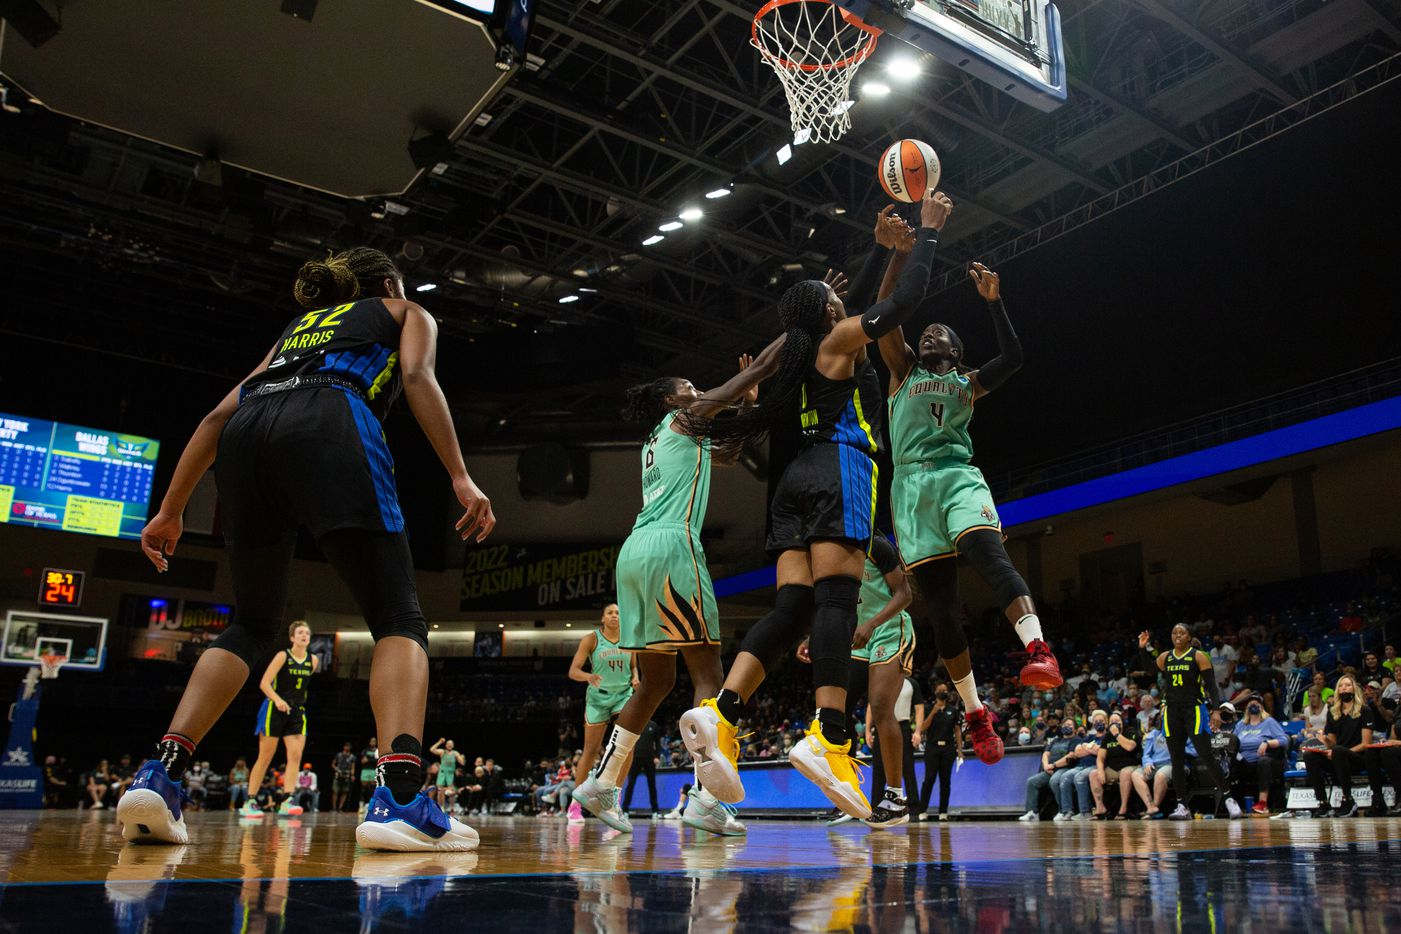 Dallas Wings forward Kayla Thorton (6) goes up for a rebound against NY Liberty's forward Natasha Howard (6) and guard Jazmine Jones (4) at College Park Center in Arlington, TX on September 11, 2021.  (Shelby Tauber/Special Contributor)